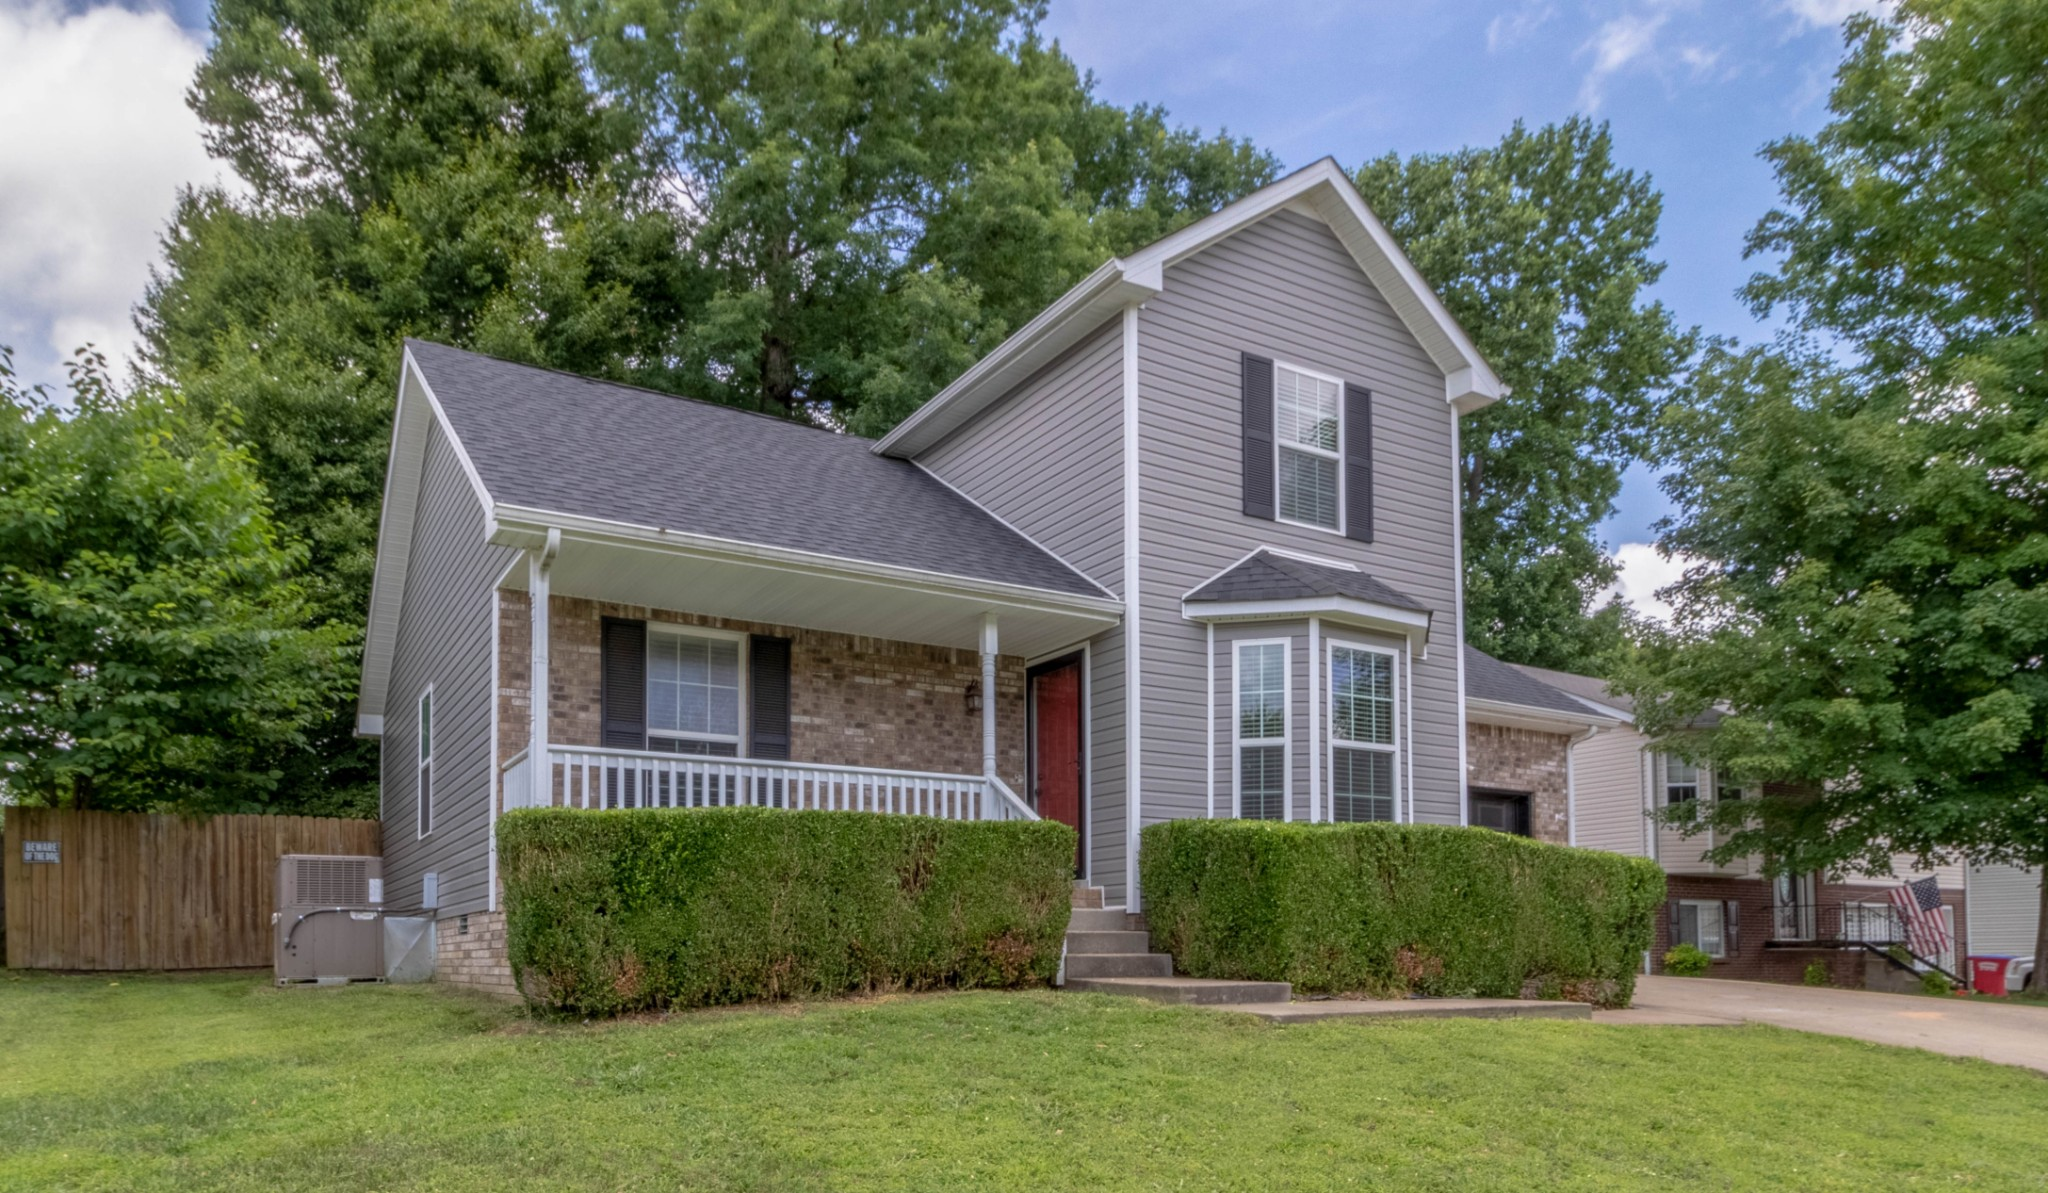 2476 Rafiki Dr Property Photo - Clarksville, TN real estate listing